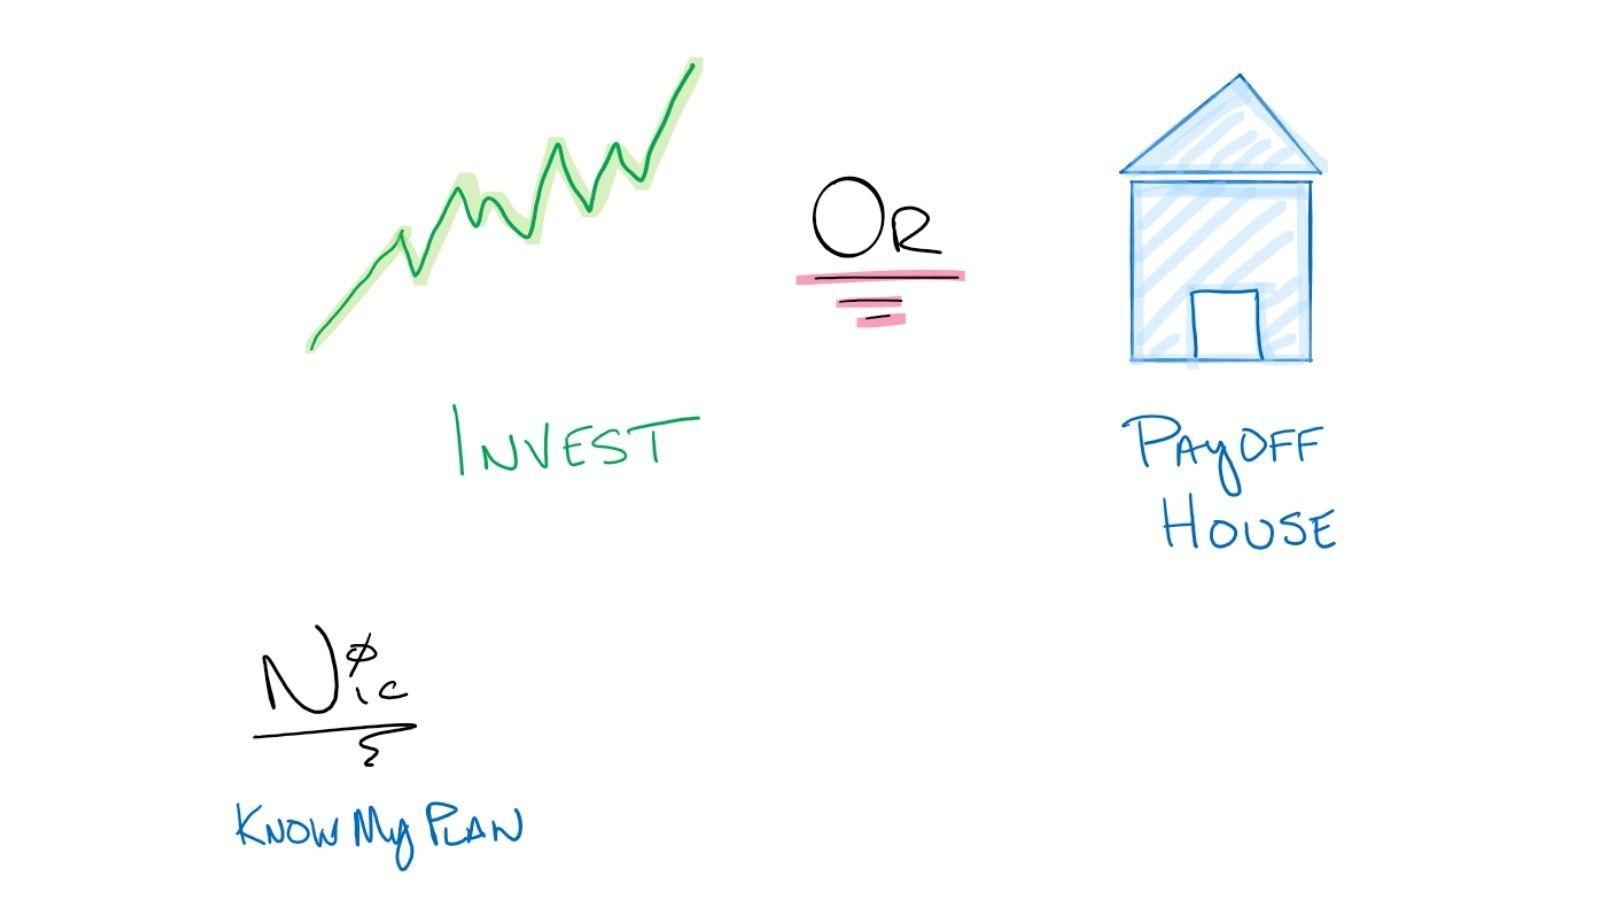 invest or pay off house